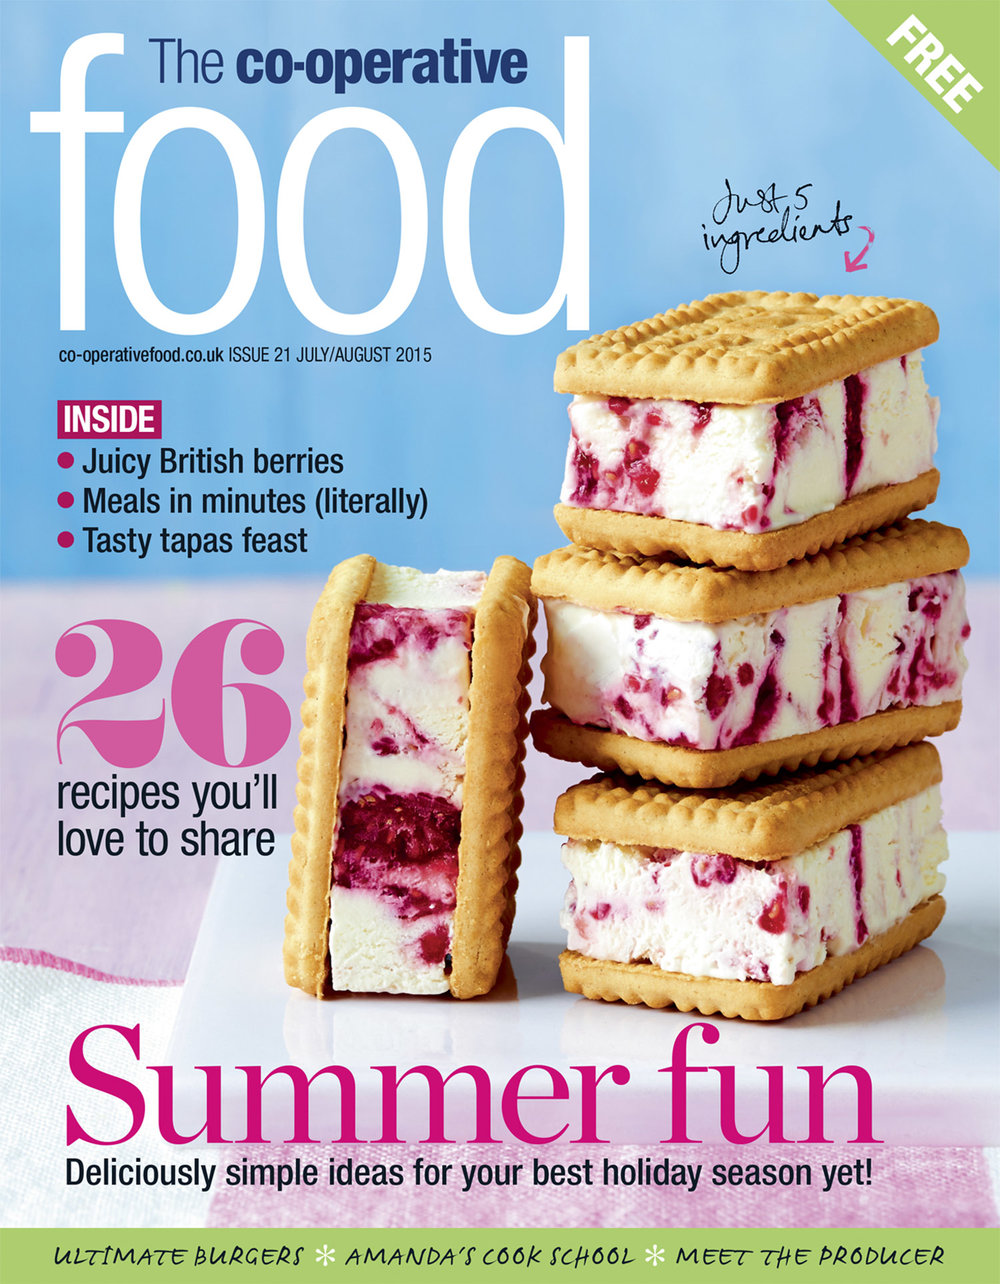 Co-opisummercover copy.jpg